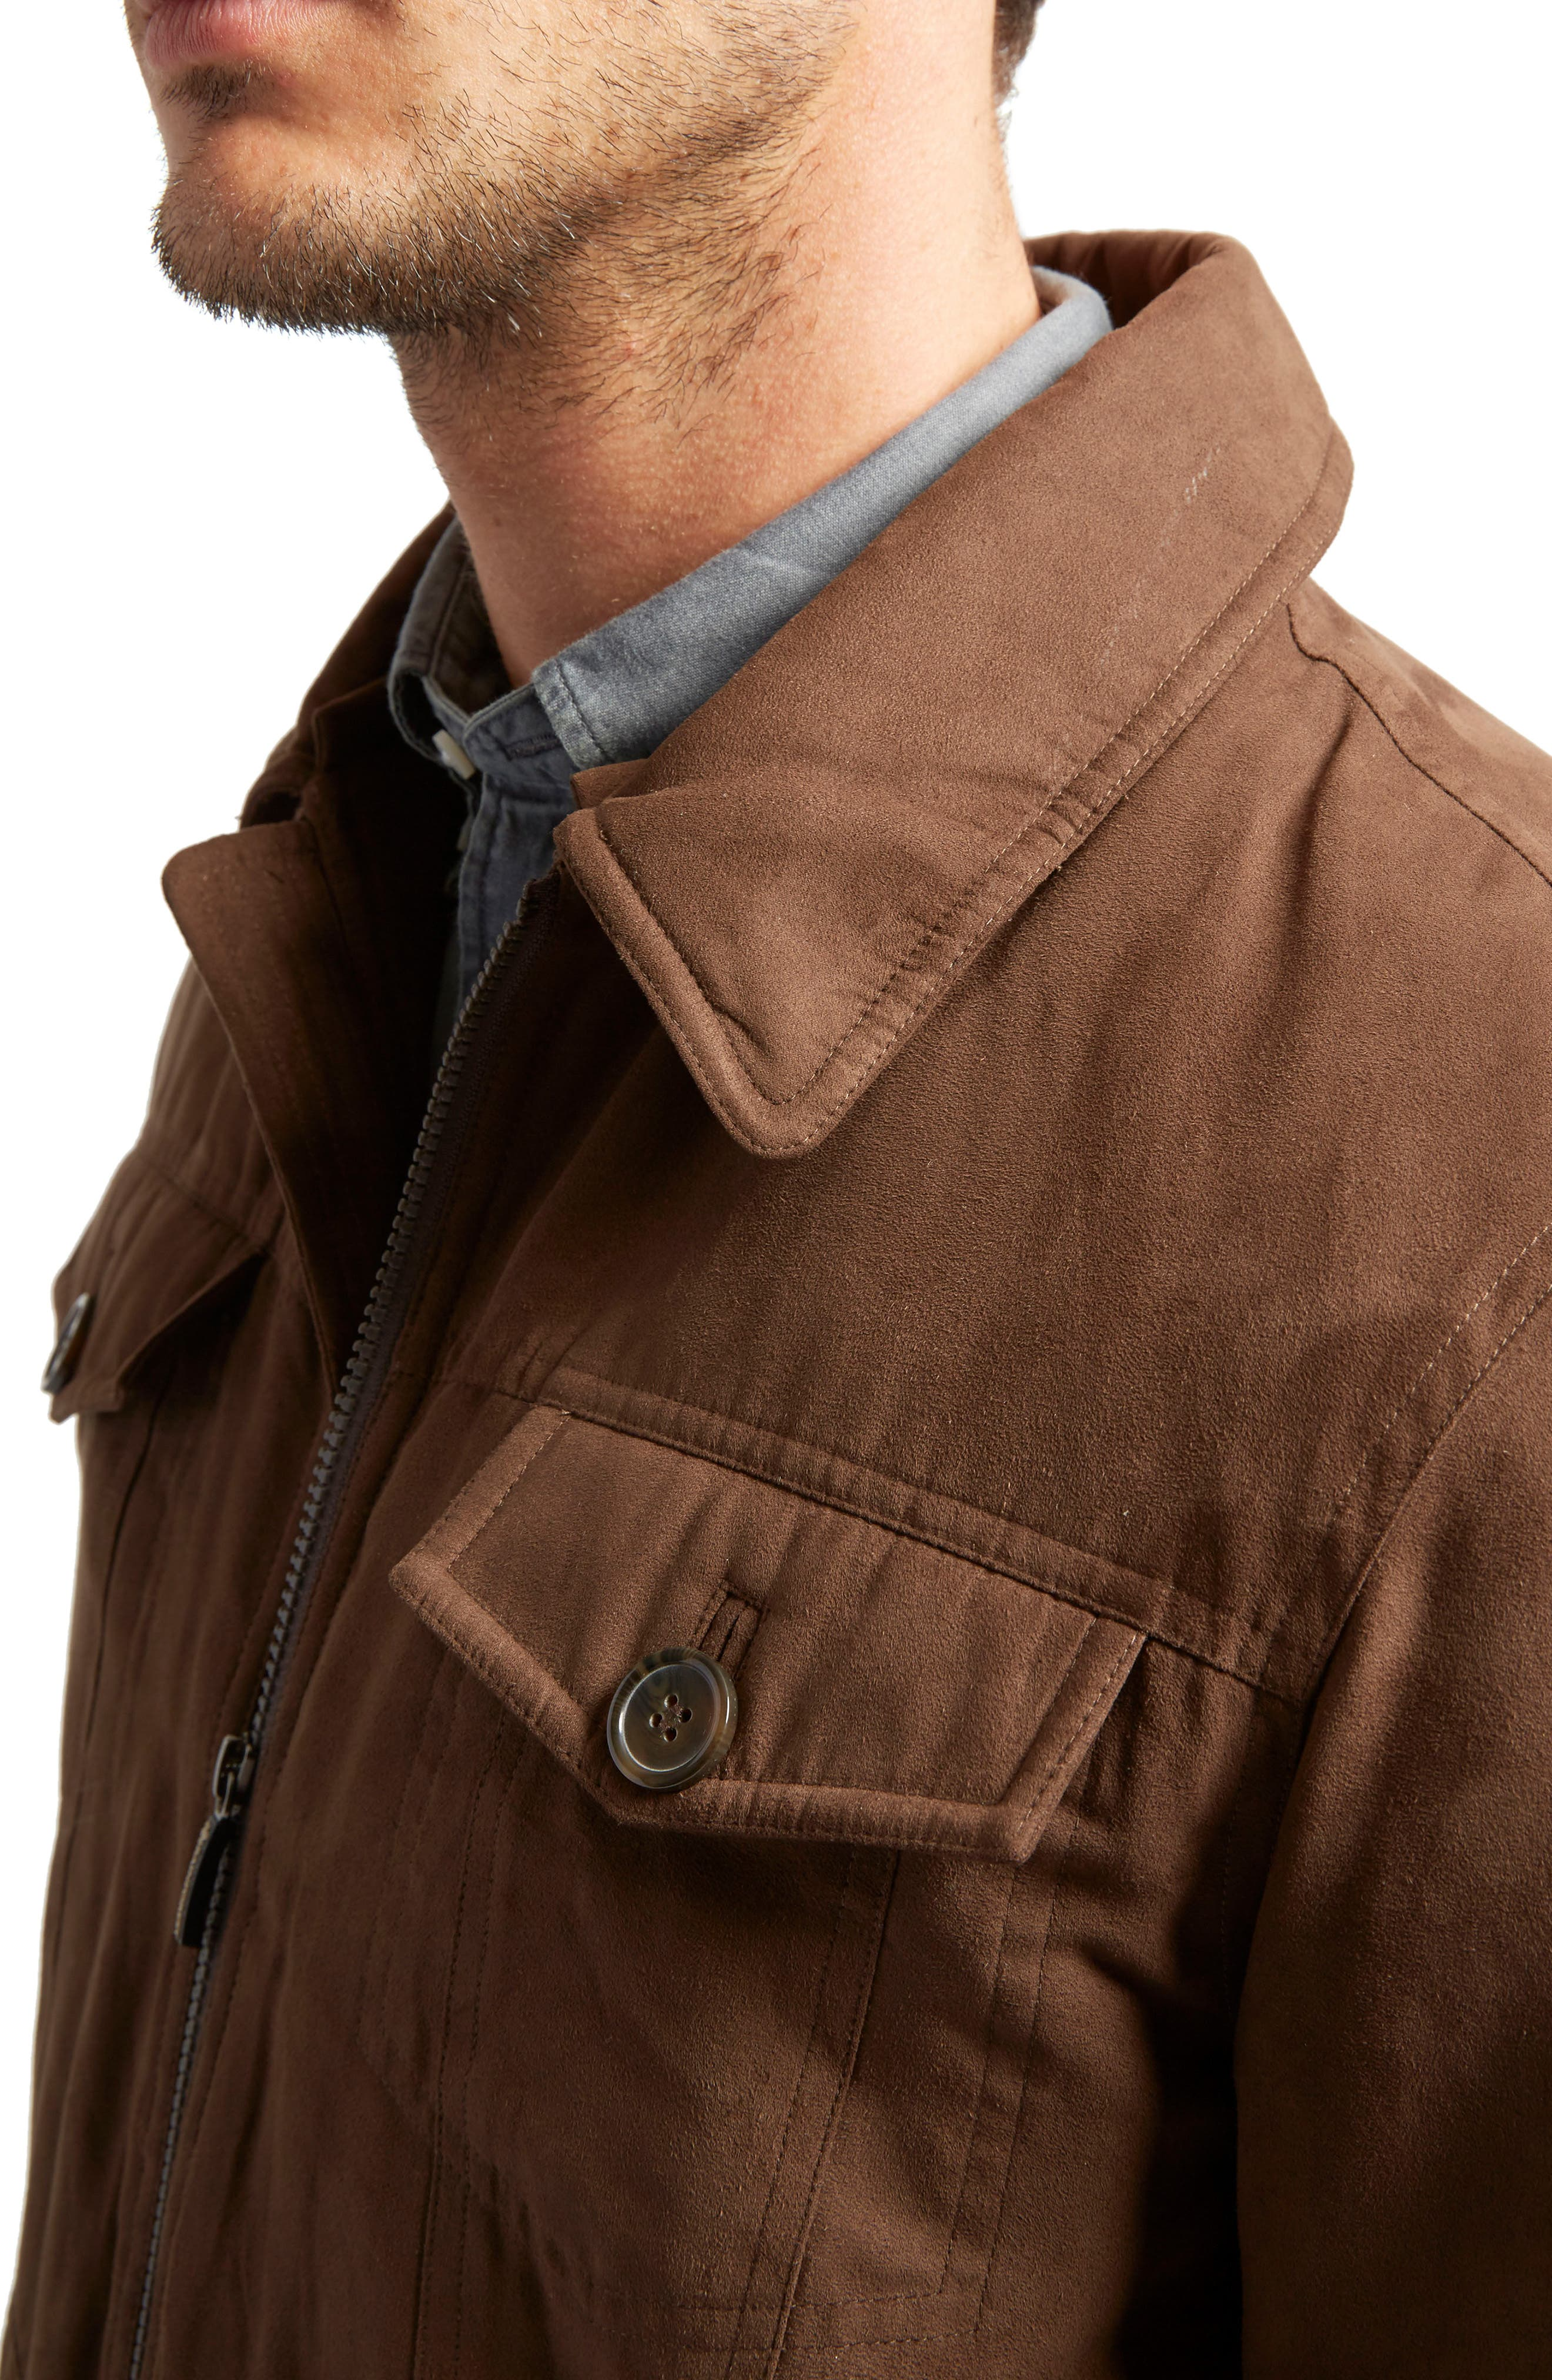 Gilpin Water-Resistant Trucker Jacket,                             Alternate thumbnail 3, color,                             214